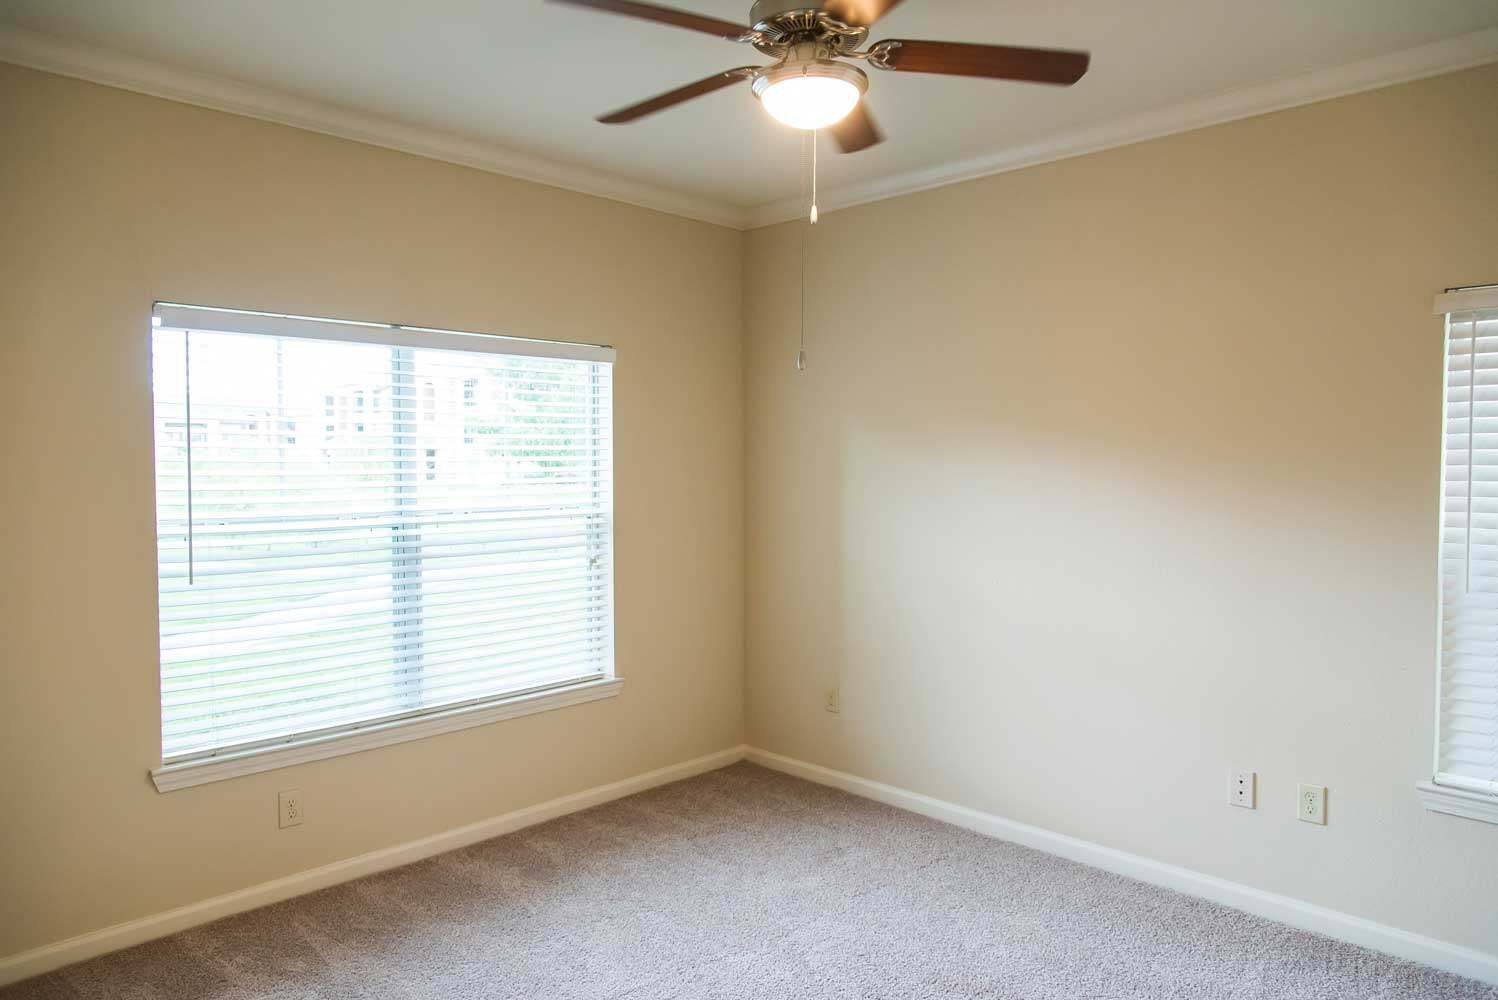 Room with Ceiling Fan at the Oxford at Country Club Apartments in Baytown, TX